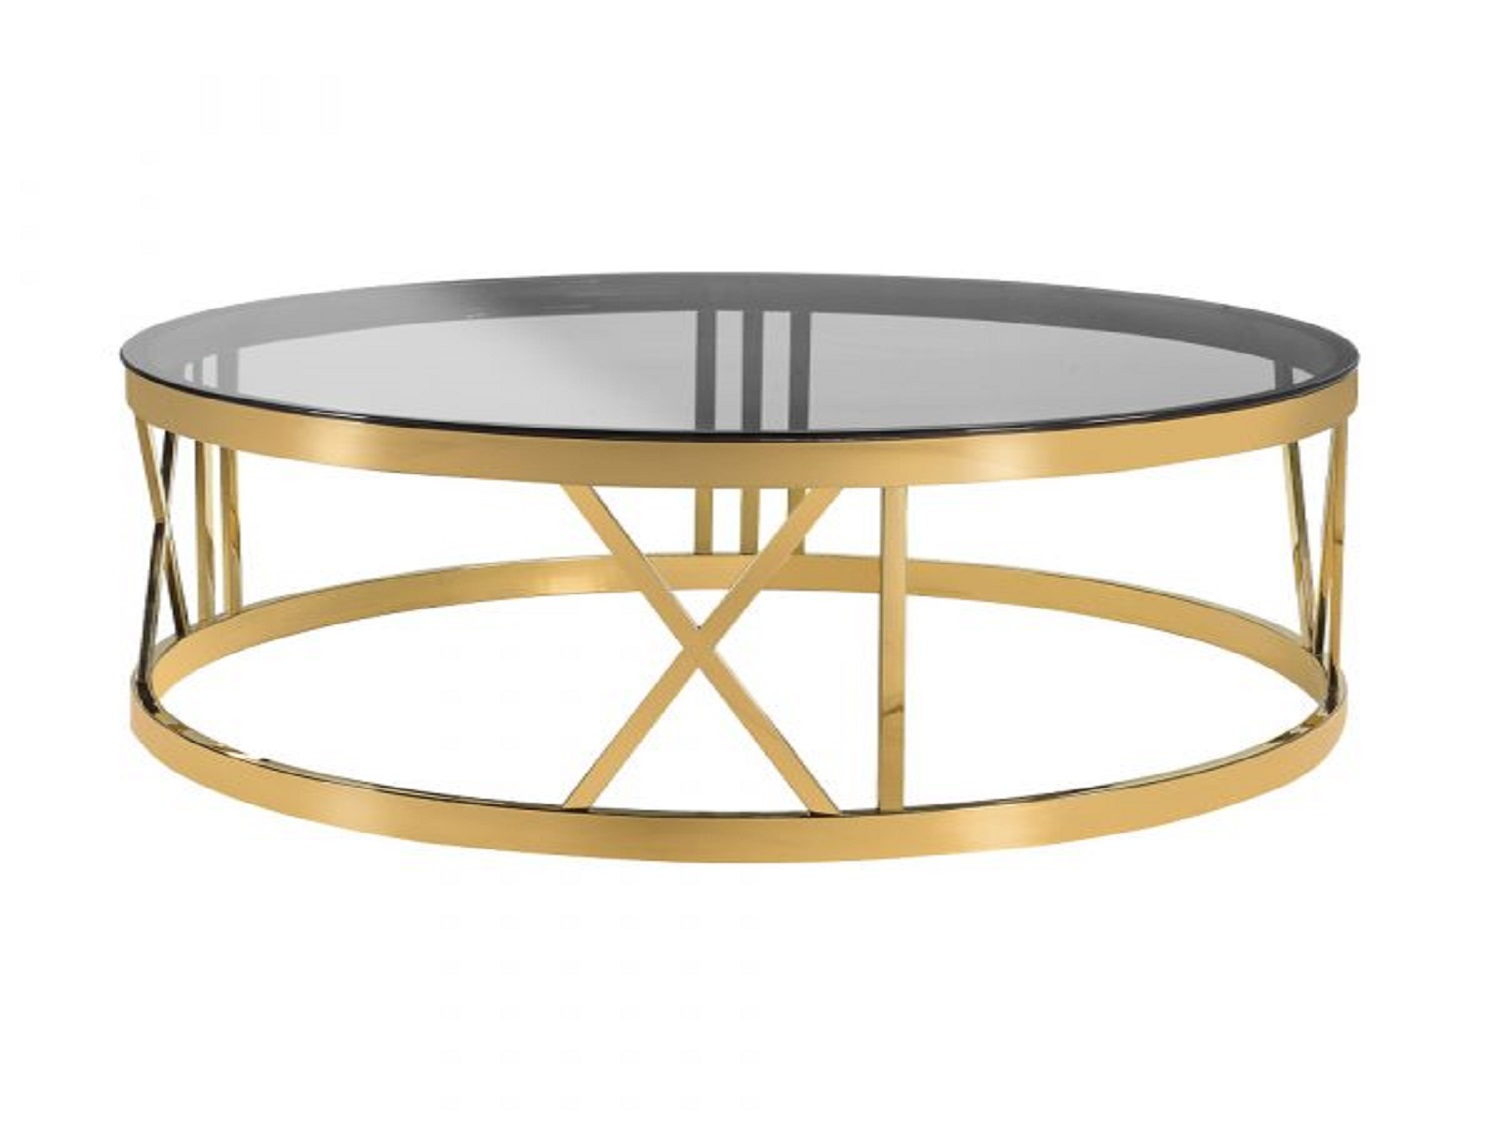 Roman Gold Coffee Table, GY-CT7737, Cofee Table by Midha Furniture to Brampton, Mississauga, Etobicoke, Toronto, Scraborough, Caledon, Oakville, Markham, Ajax, Pickering, Oshawa, Richmondhill, Kitchener, Hamilton and GTA area